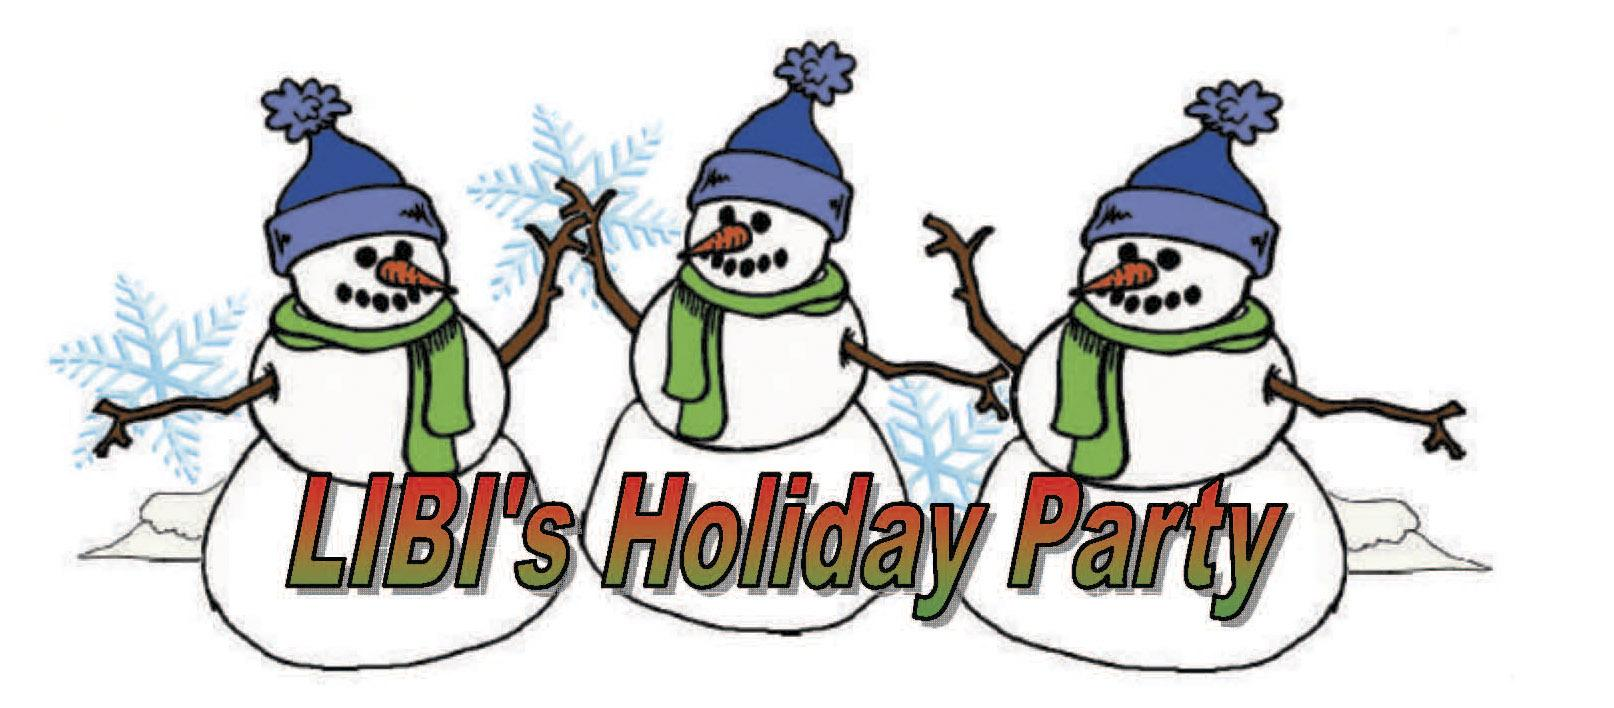 Holiday Party Clip Art.